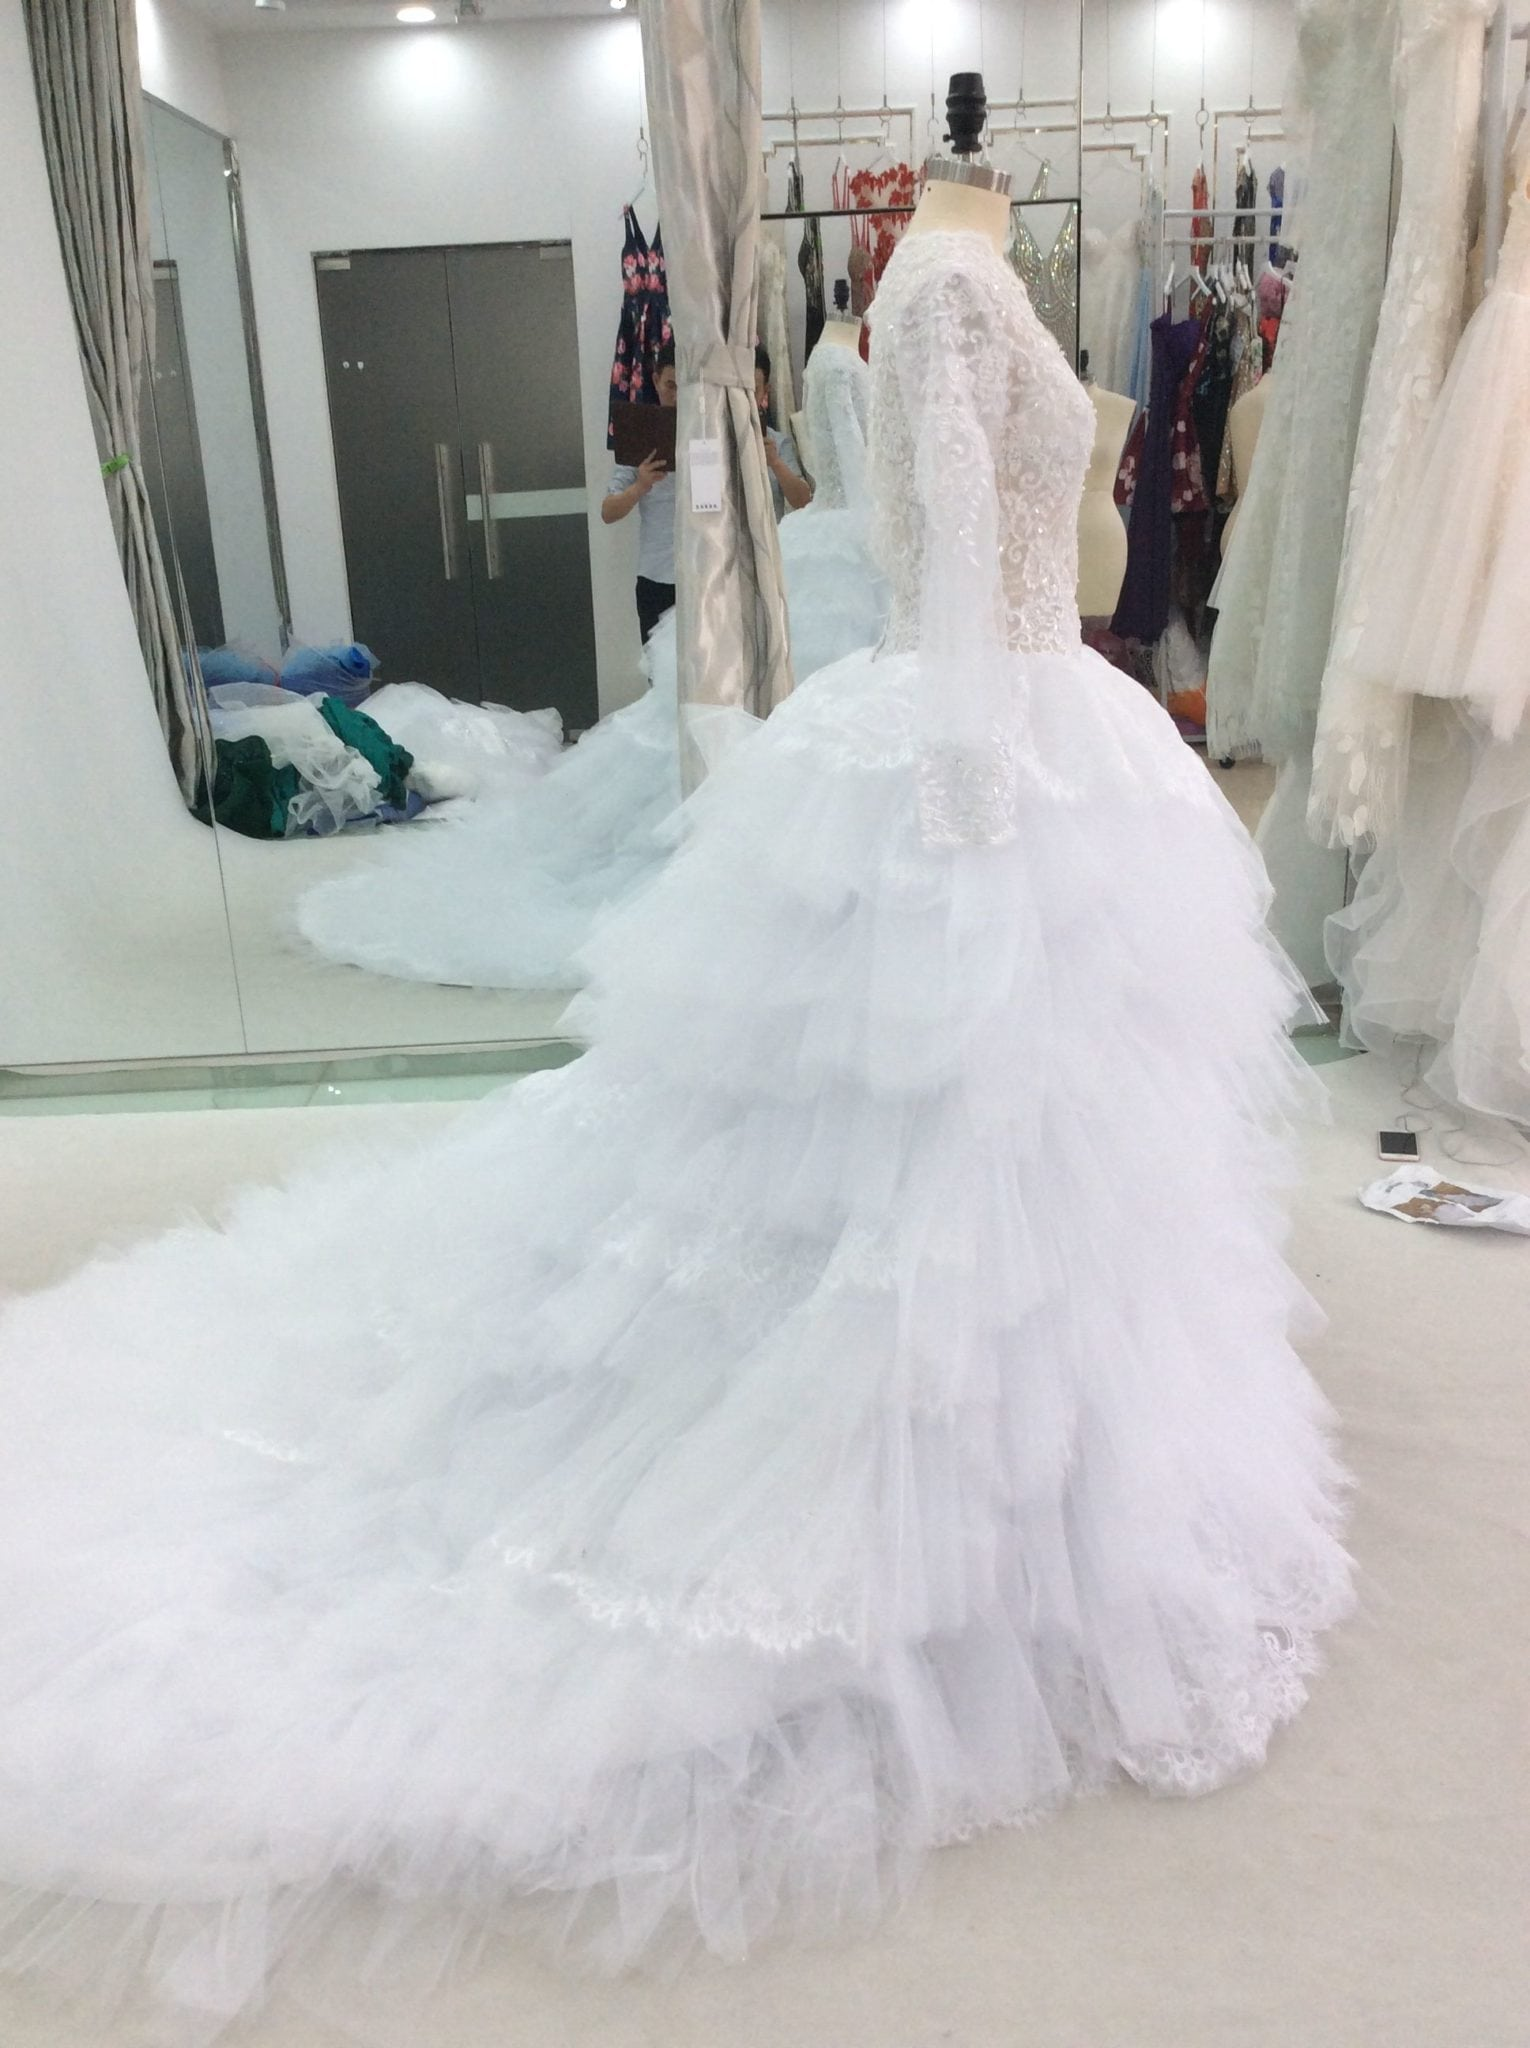 V-neck lace wedding dresses from Darius Cordell